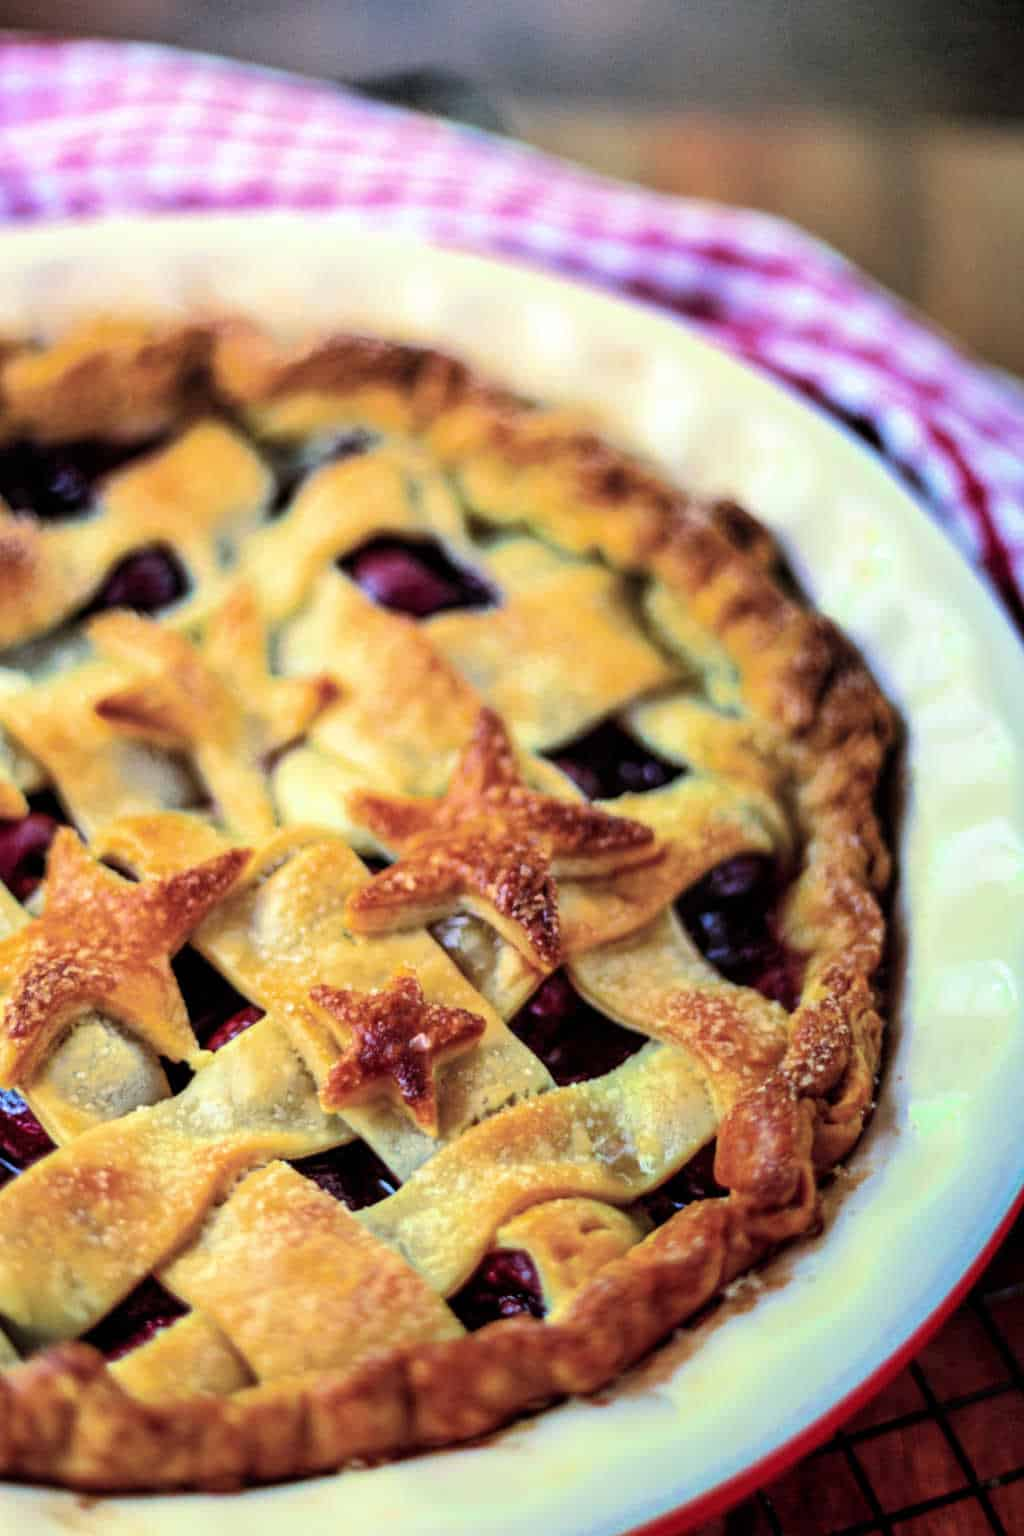 5-Star Cherry Pie with a lattice crust